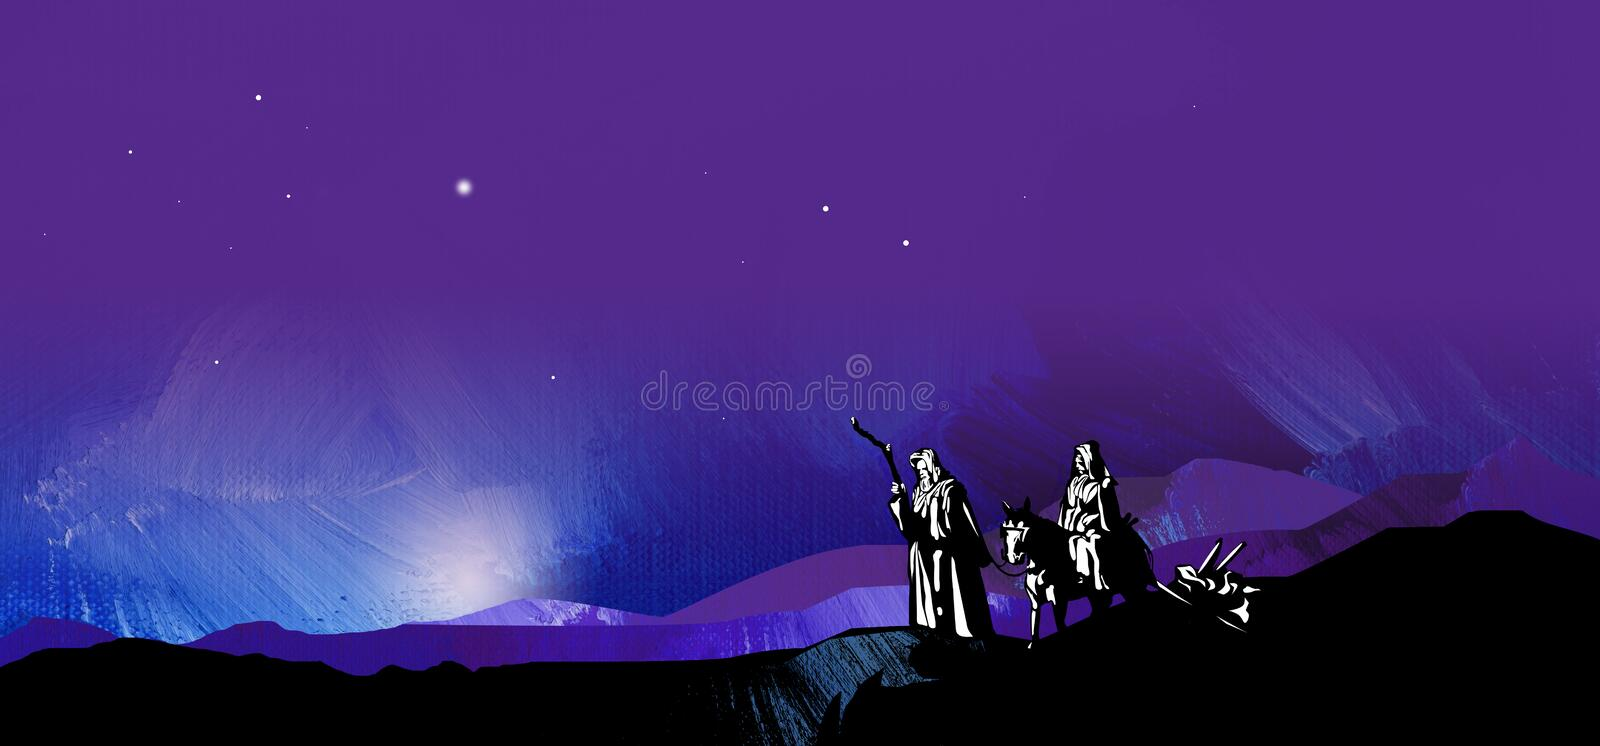 Graphic starry night journey to Bethlehem. Graphic illustration of dark starry night composed of textured oil paint background with glowing stars and hand drawn vector illustration